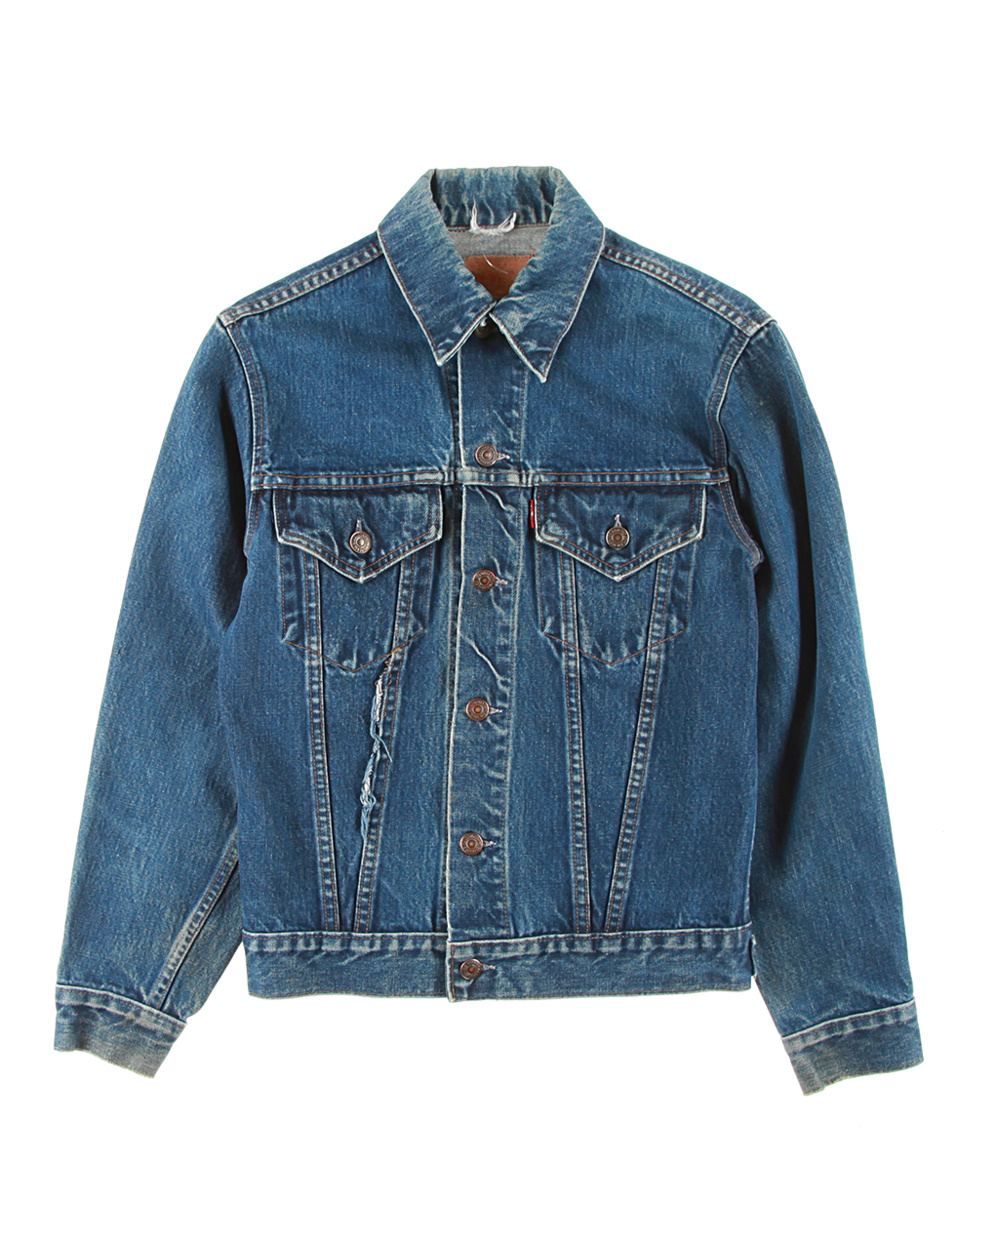 60s Rare Levi's Denim Jacket